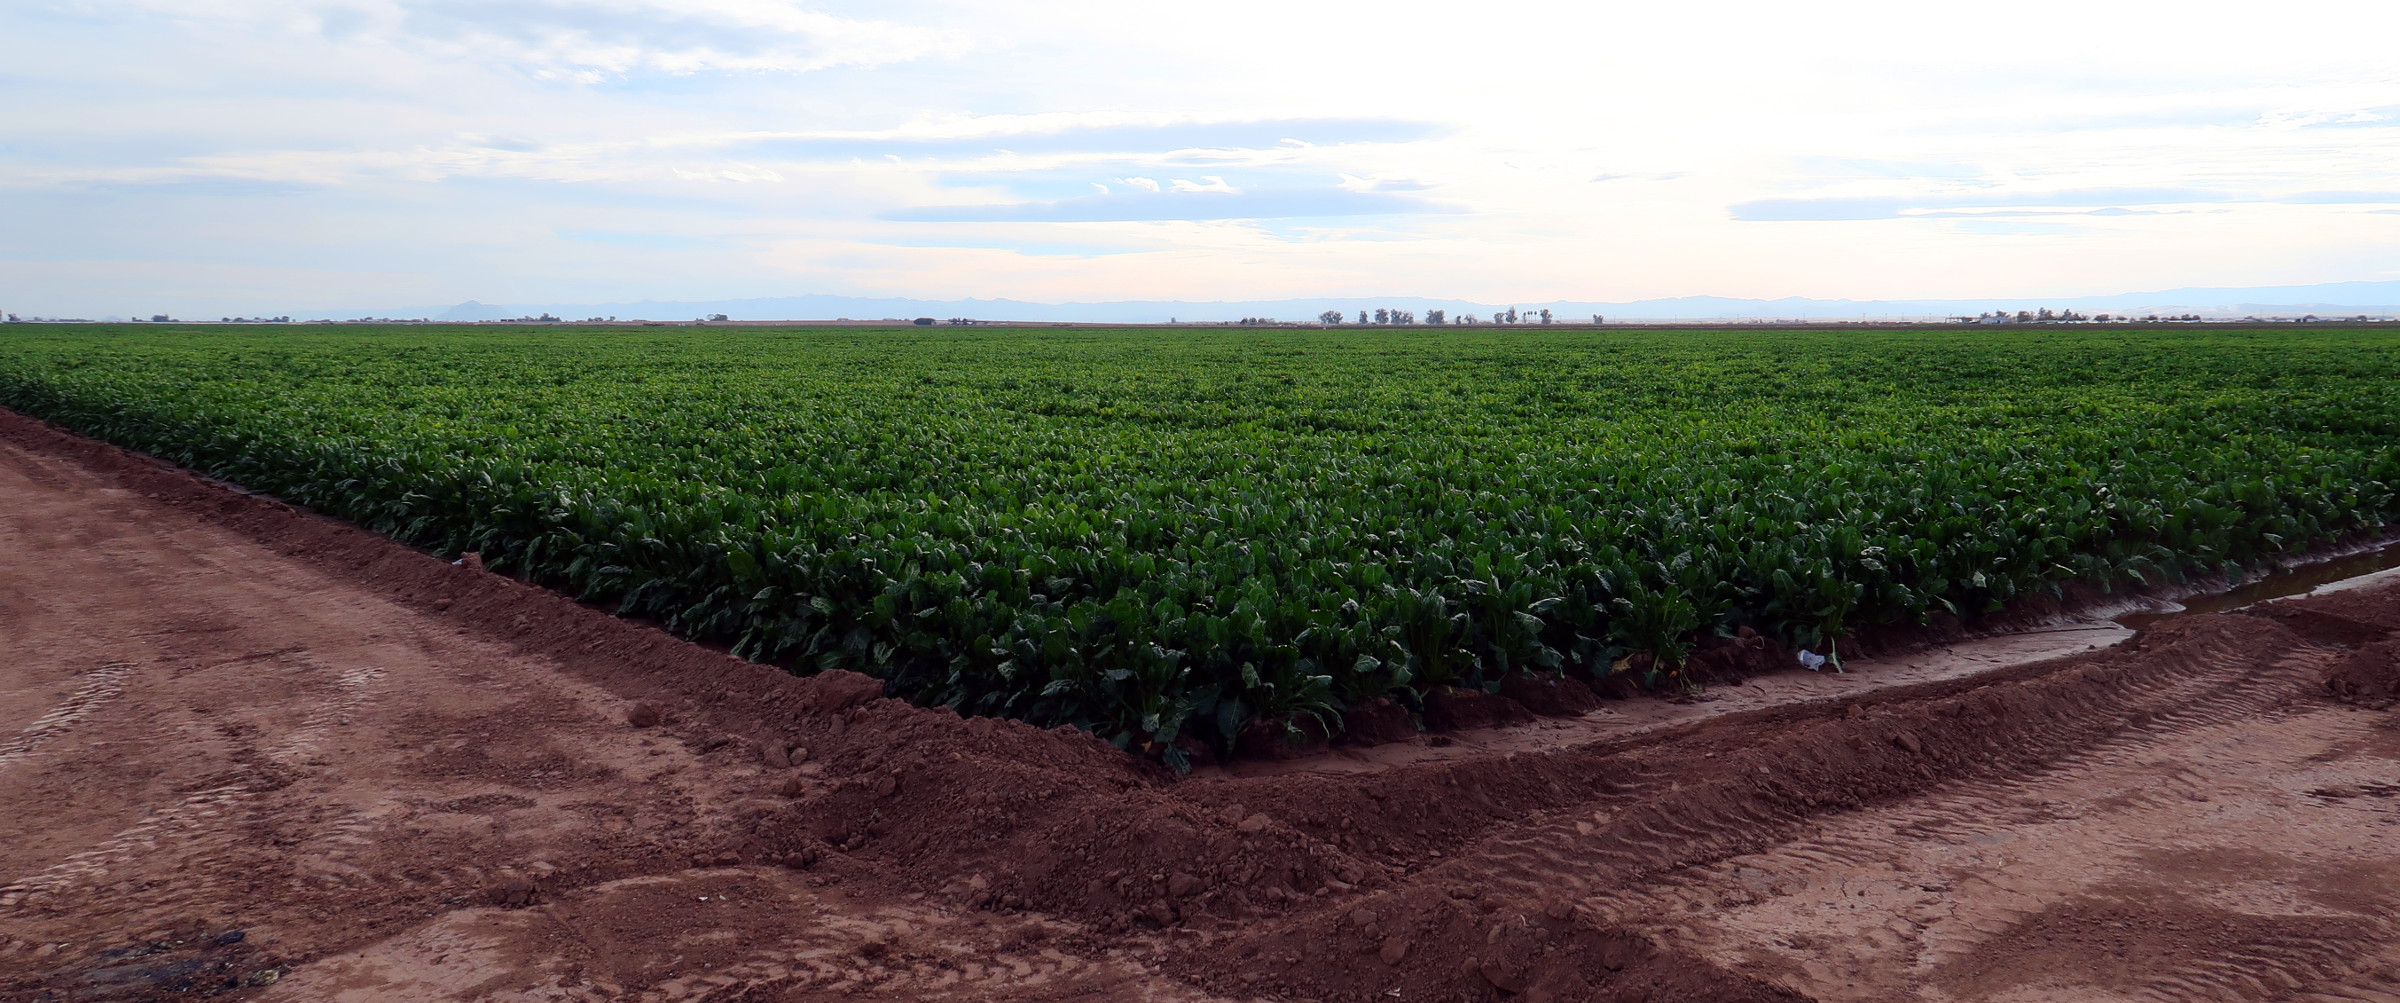 "Sugar Beet field in southern California in the desert near the Salton Sea. More than 90% of the Sugar Beets grown in the USA are GMO, genetically modified to be ""Round-up Ready."""